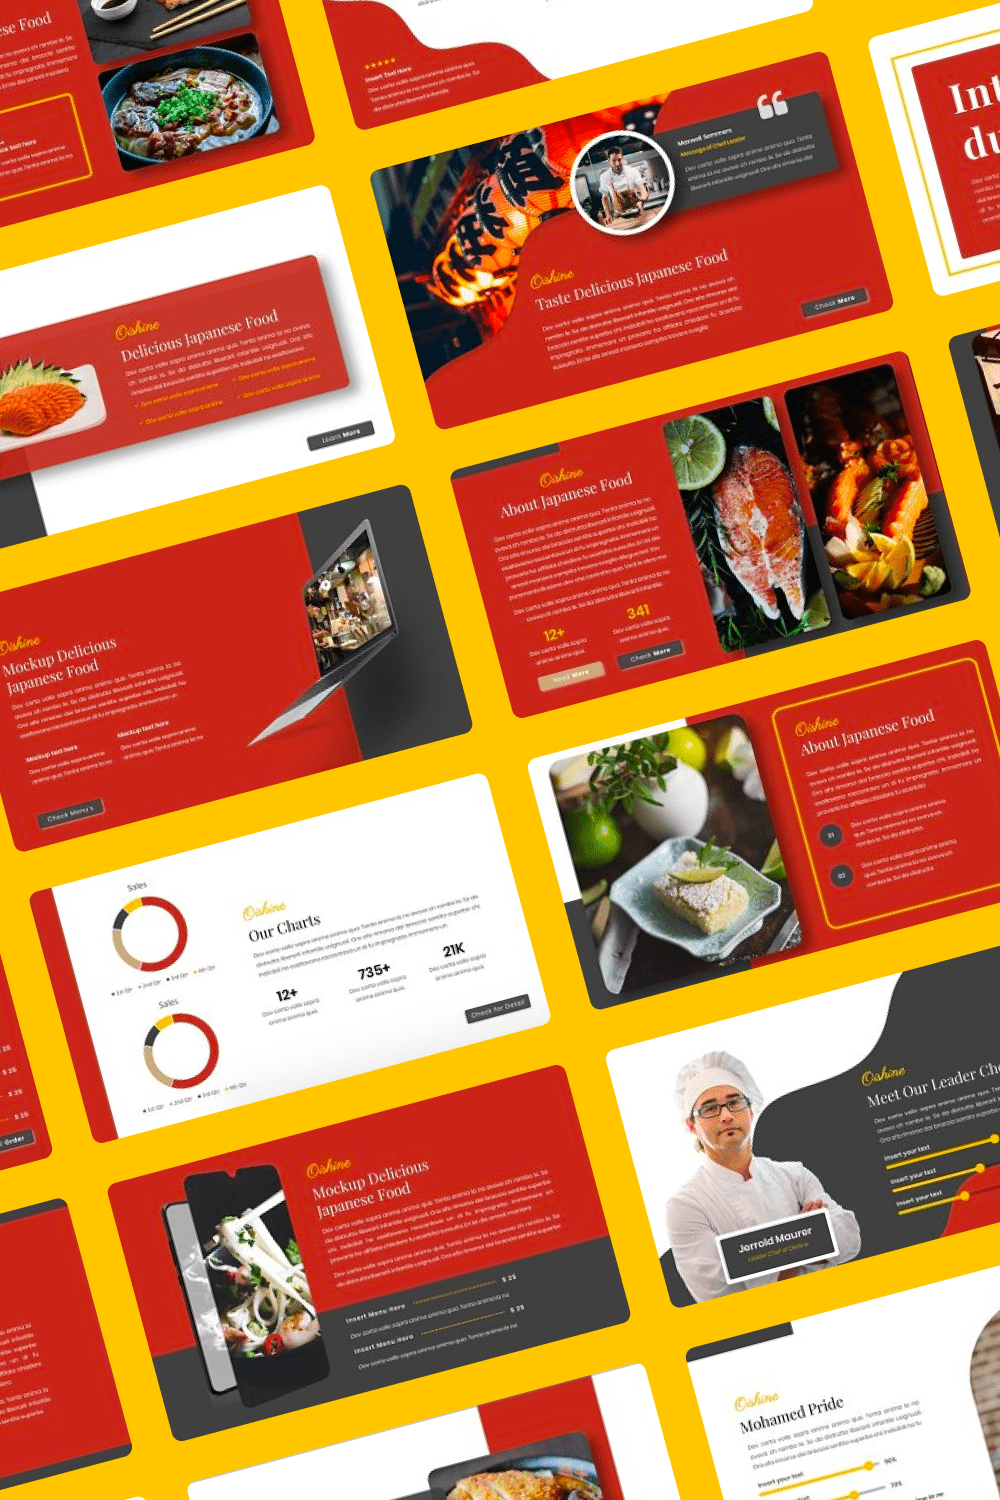 Red is the color of Japan, even the flag has it. By using symbolic and traditional colors in your presentation, you increase the chance of success.